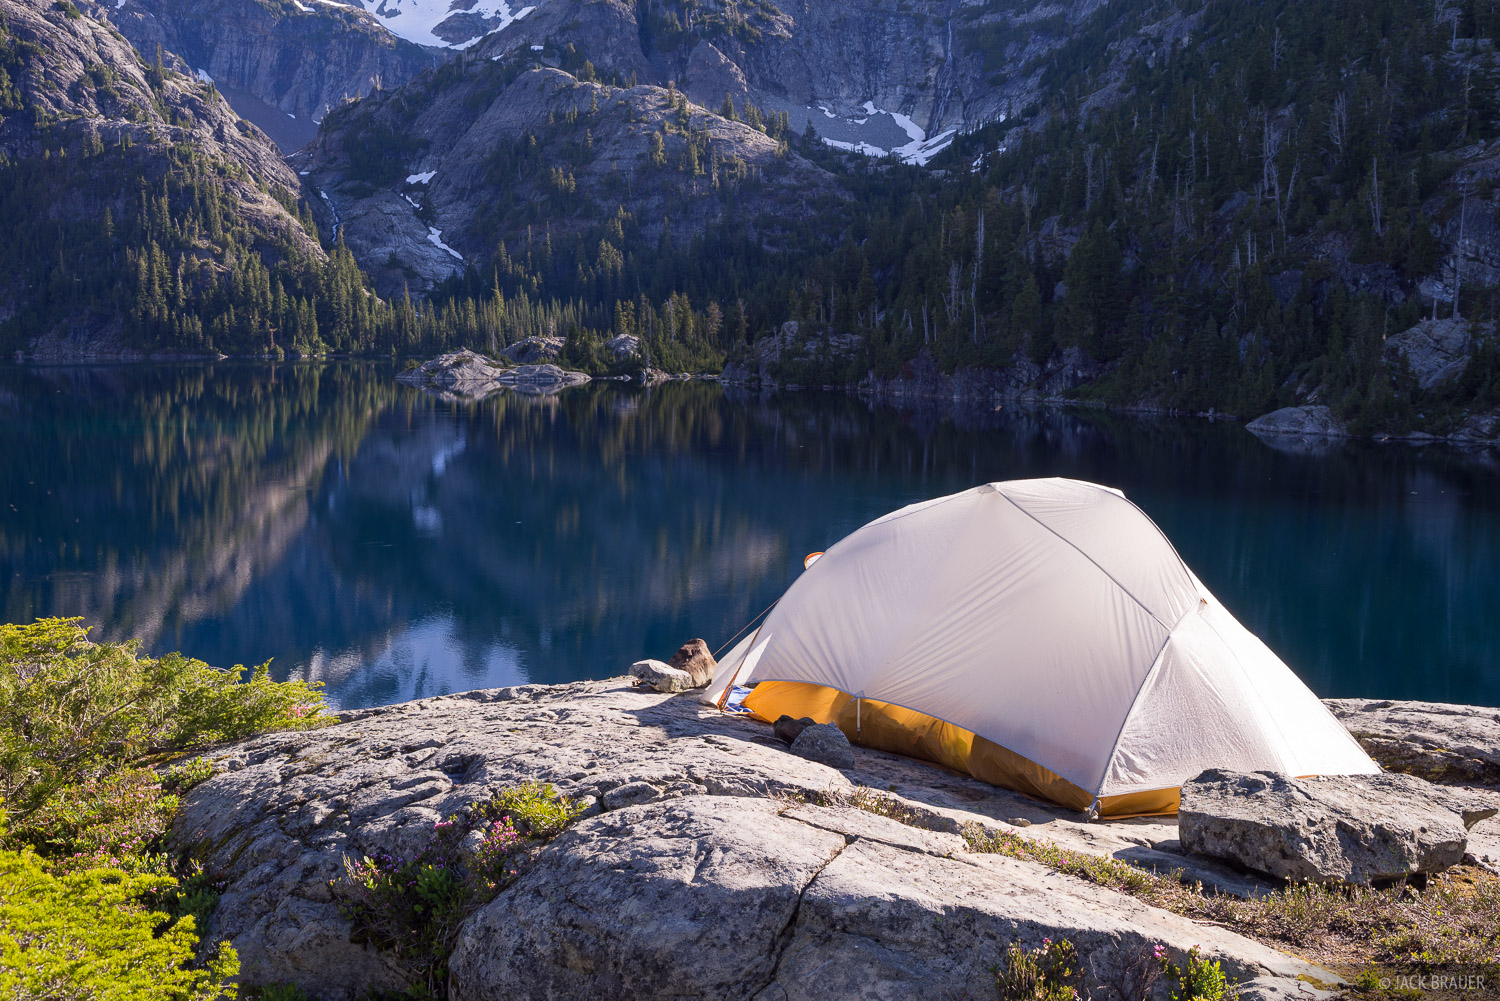 Alpine Lakes Wilderness, Slade Lake, Washington, tent, photo